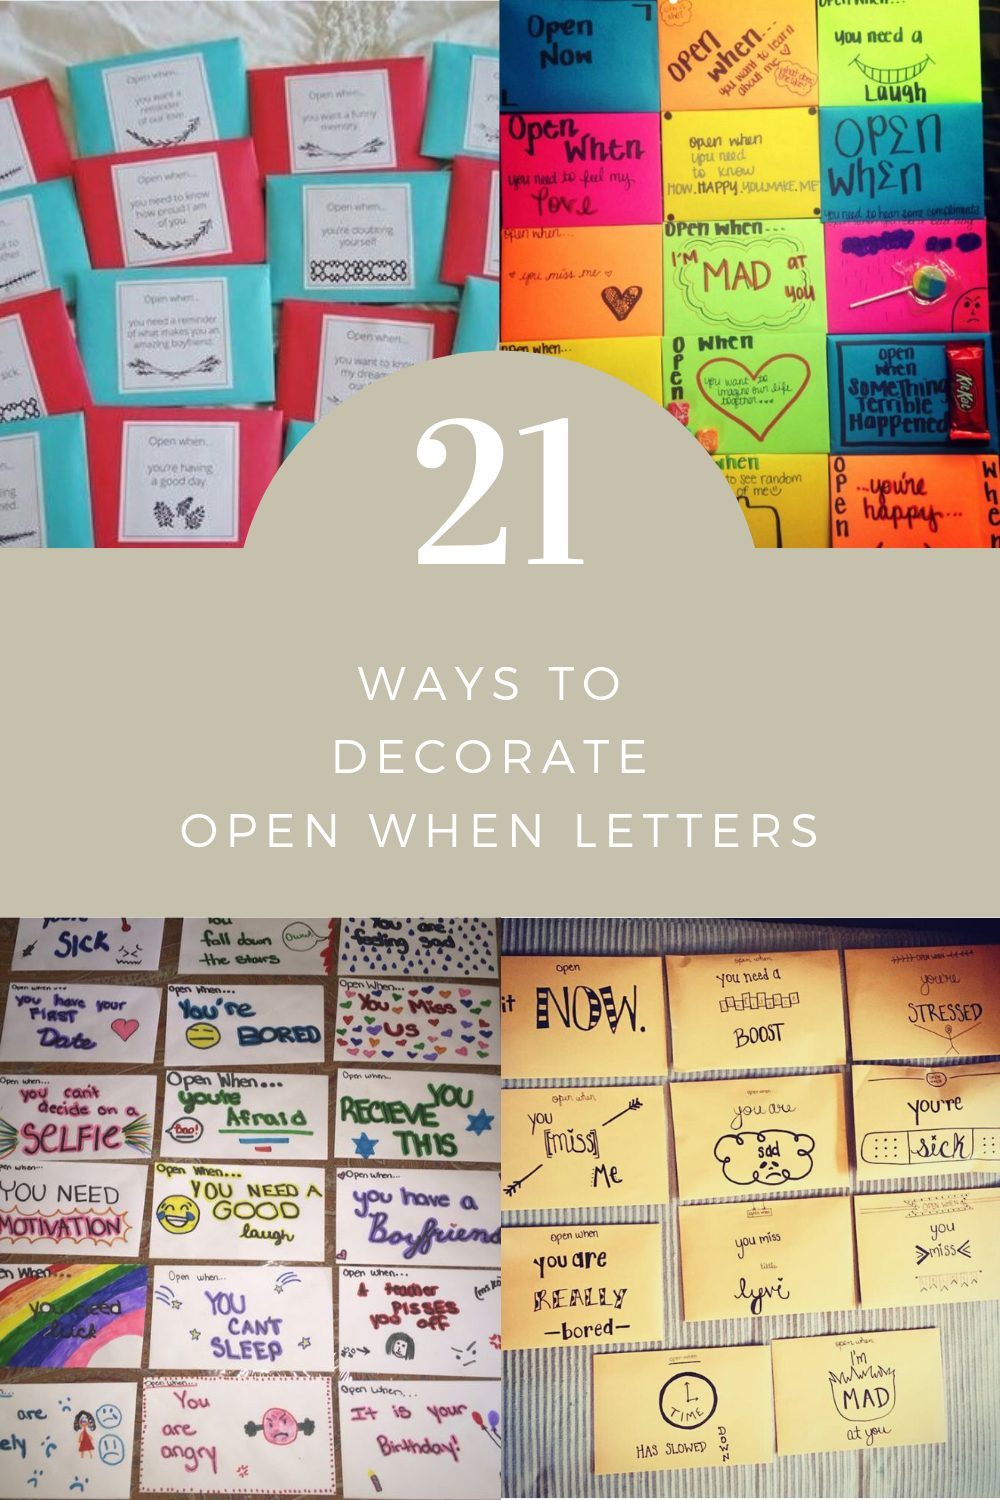 21 Ways to Decorate Open When Letters